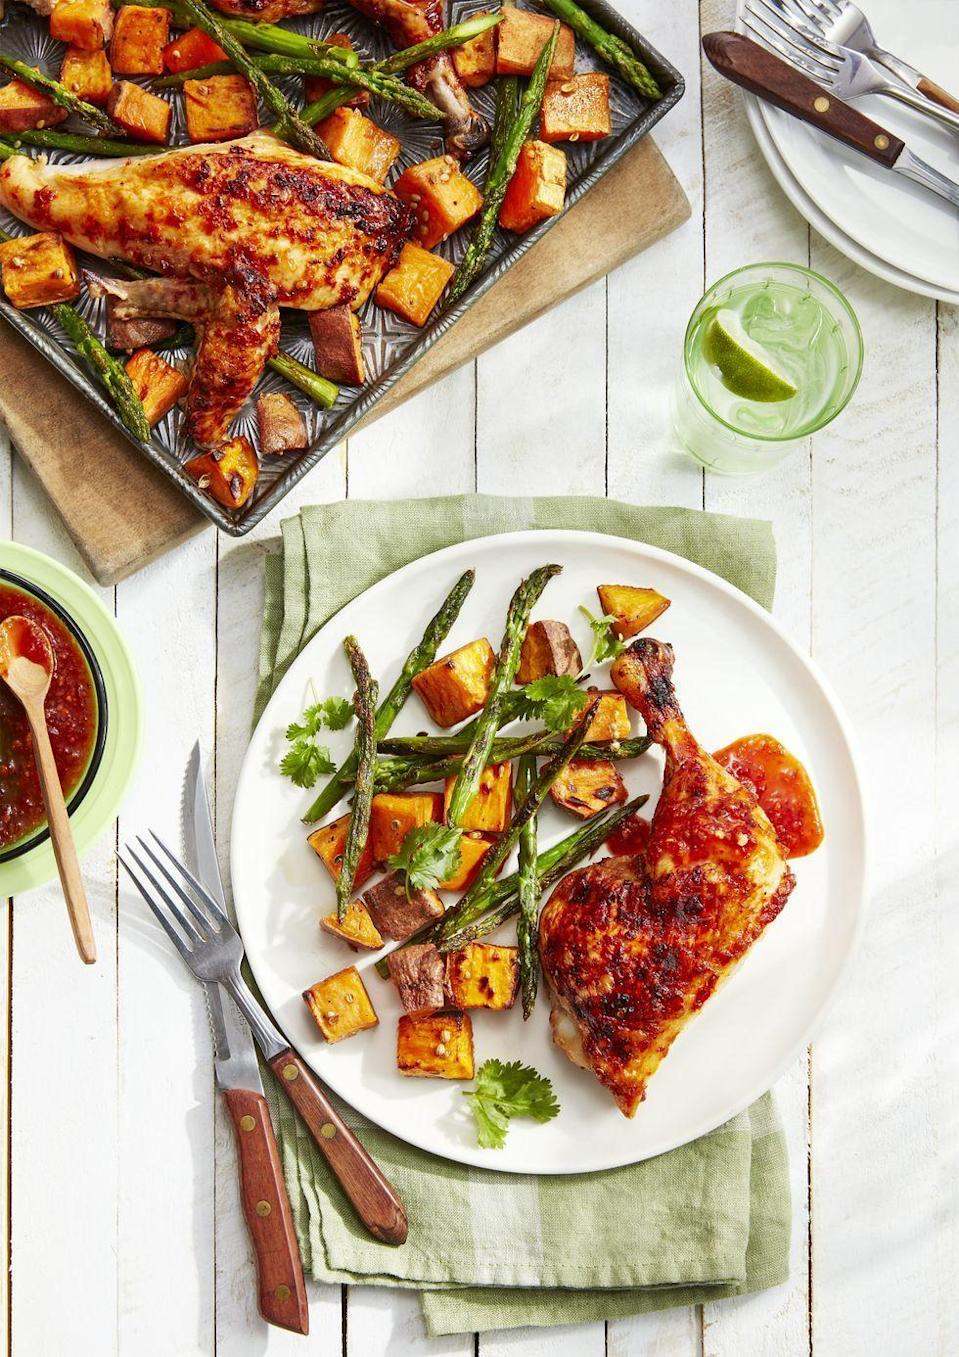 """<p>This easy weeknight dish is packed with flavor, and the leftovers taste delicious reheated <em>or</em> cold. </p><p><strong><a href=""""https://www.countryliving.com/food-drinks/a26434203/sweet-spicy-chicken-roasted-sweet-potatoes-asparagus-recipe/"""" rel=""""nofollow noopener"""" target=""""_blank"""" data-ylk=""""slk:Get the recipe"""" class=""""link rapid-noclick-resp"""">Get the recipe</a>.</strong></p><p><a class=""""link rapid-noclick-resp"""" href=""""https://www.amazon.com/Nordic-Ware-Natural-Aluminum-Commercial/dp/B0049C2S32/?tag=syn-yahoo-20&ascsubtag=%5Bartid%7C10050.g.877%5Bsrc%7Cyahoo-us"""" rel=""""nofollow noopener"""" target=""""_blank"""" data-ylk=""""slk:SHOP SHEET PANS"""">SHOP SHEET PANS</a></p>"""